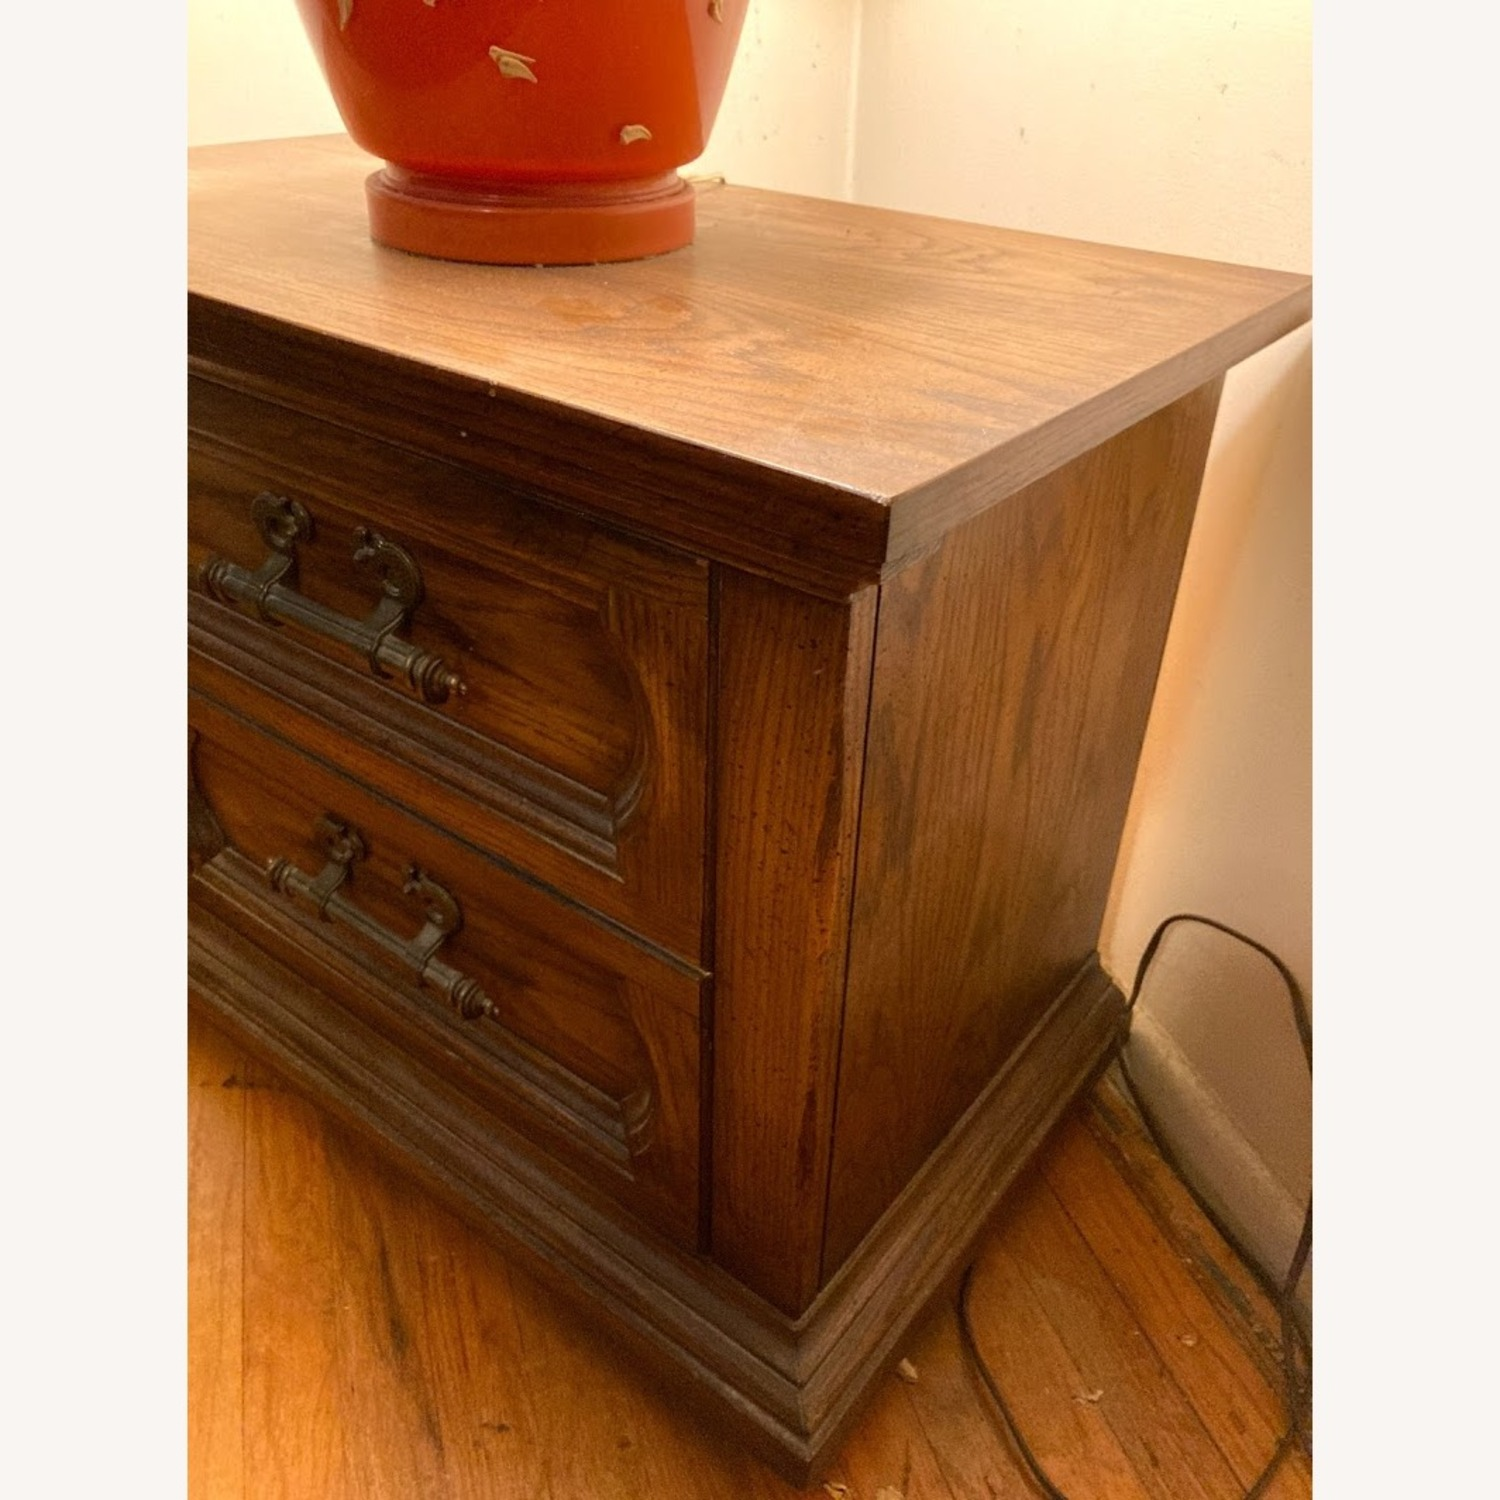 Vintage Solid Wood Side Table with 2 Drawers - image-3